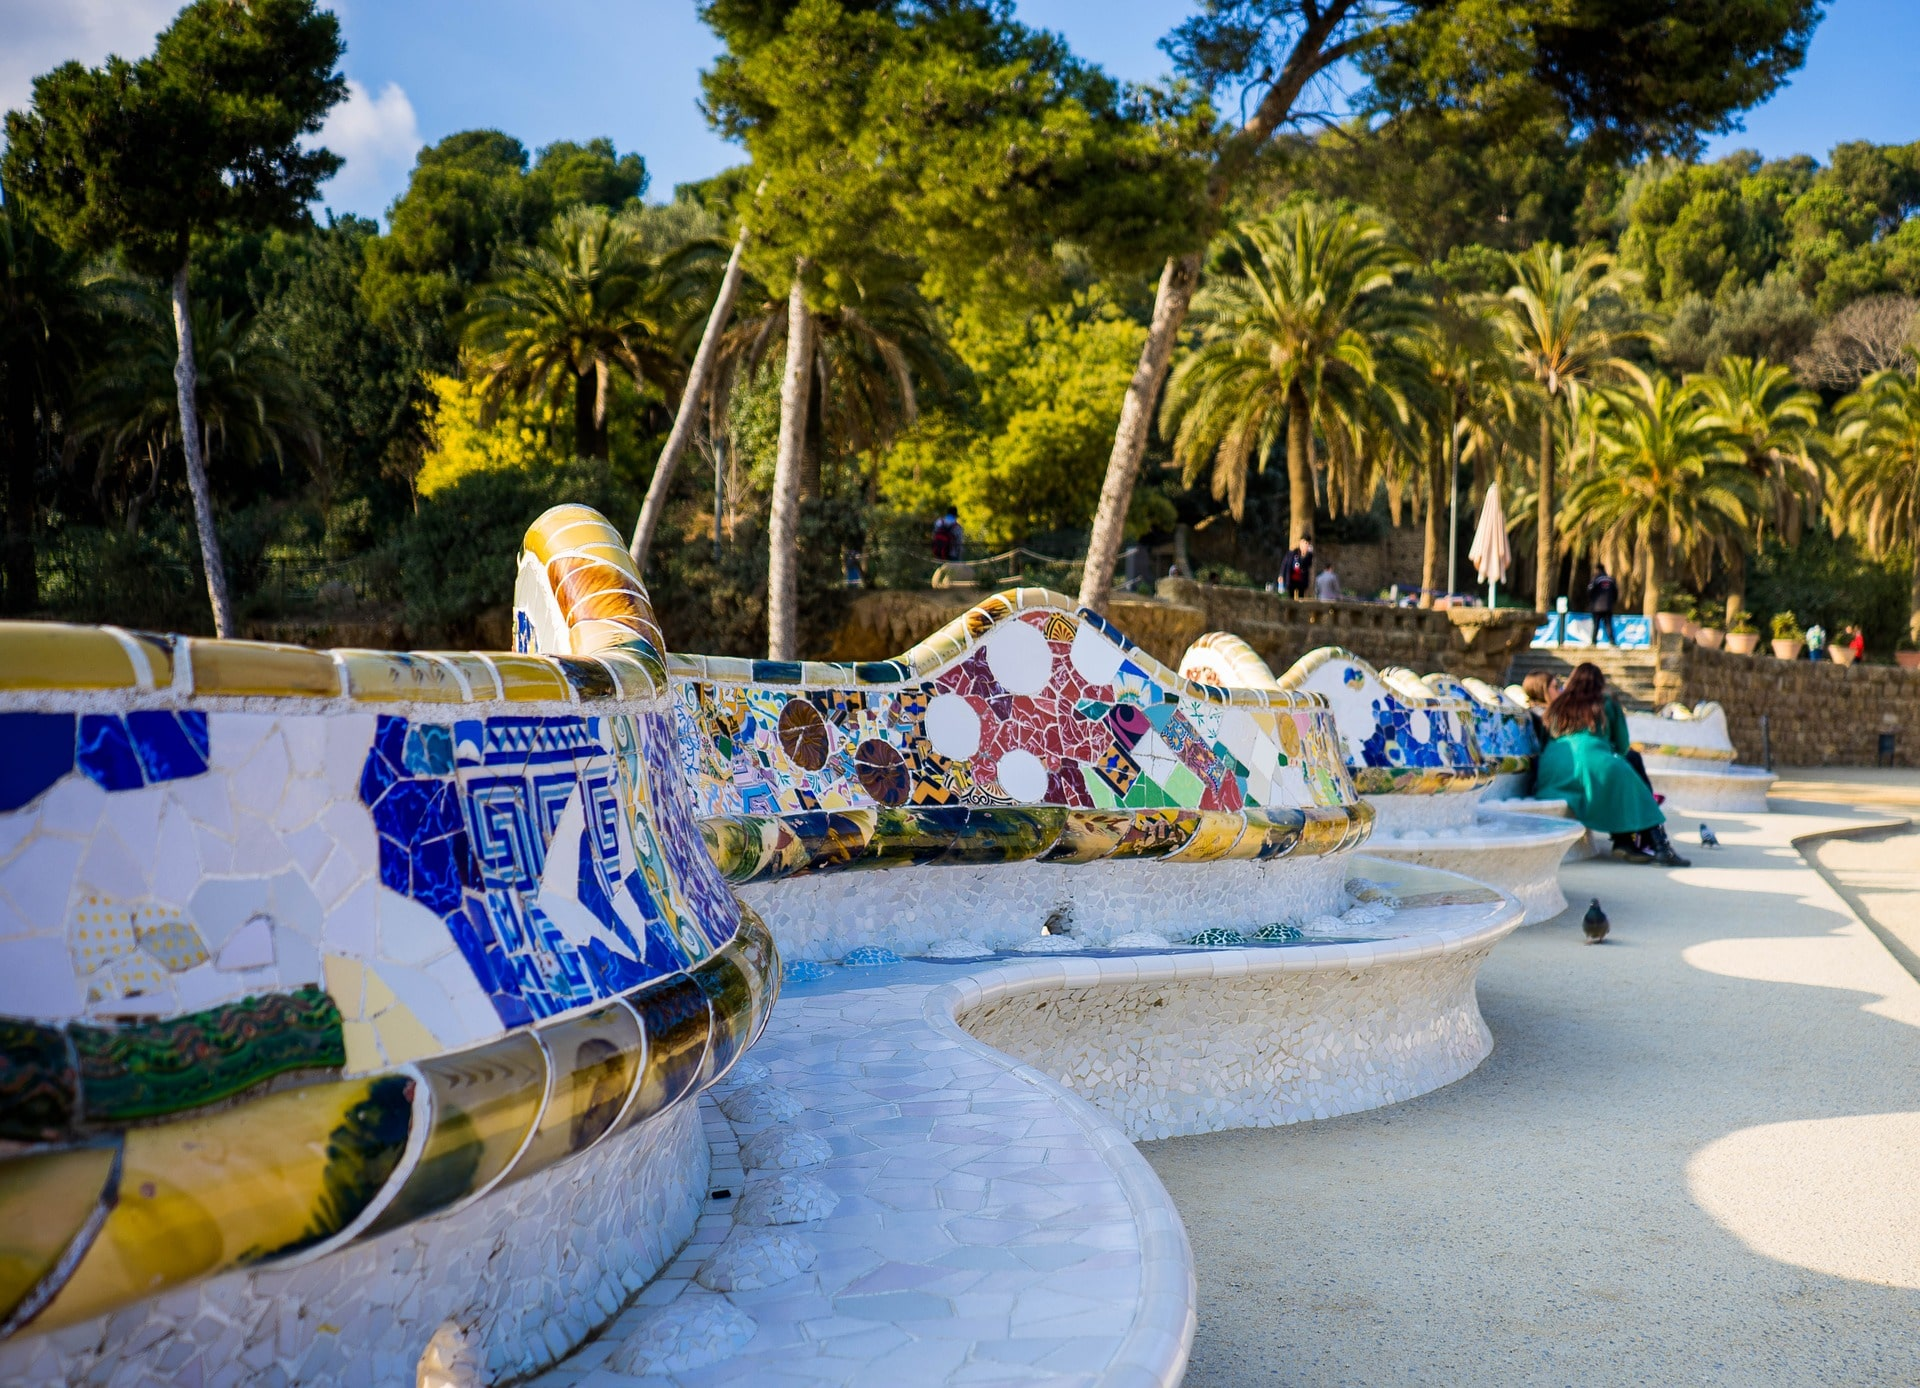 Marveling at the whimsical Park Guell is an incredible thing to do in Spain